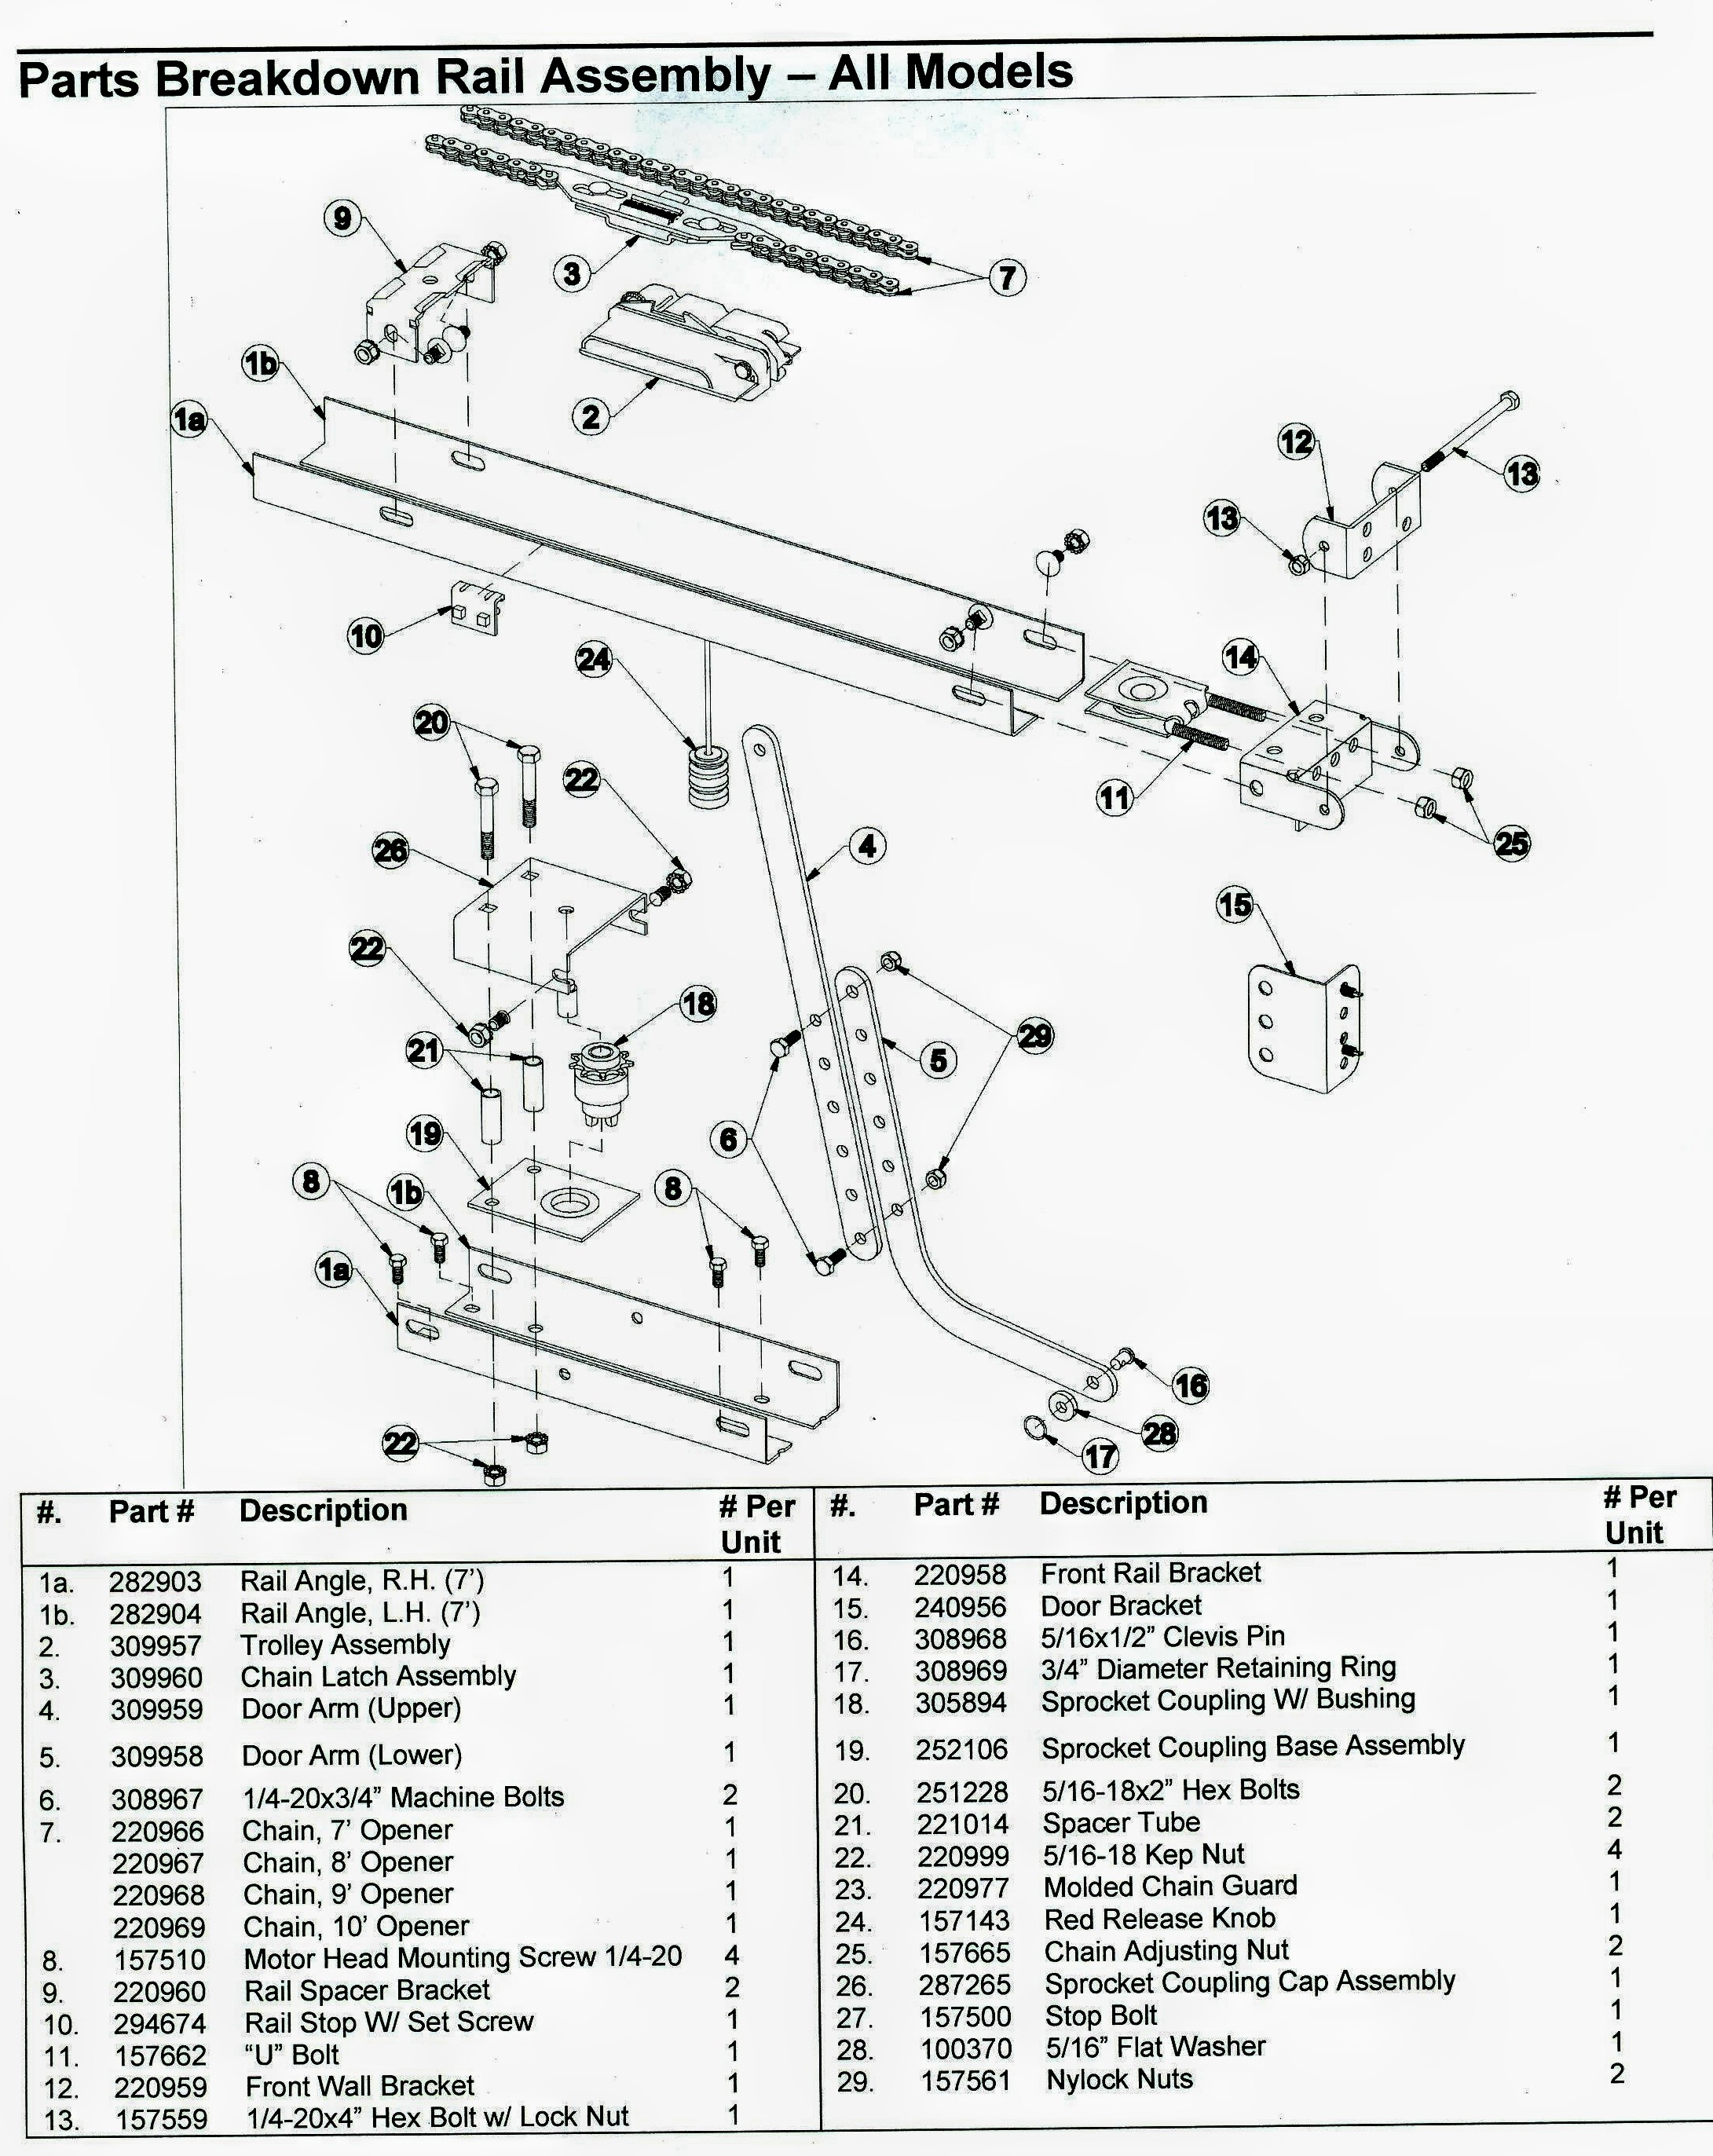 wiring diagram for liftmaster garage door opener wiring diagram throughout liftmaster garage door opener parts diagram wiring diagram for liftmaster garage door opener wiring diagram garage door opener wiring diagram at edmiracle.co